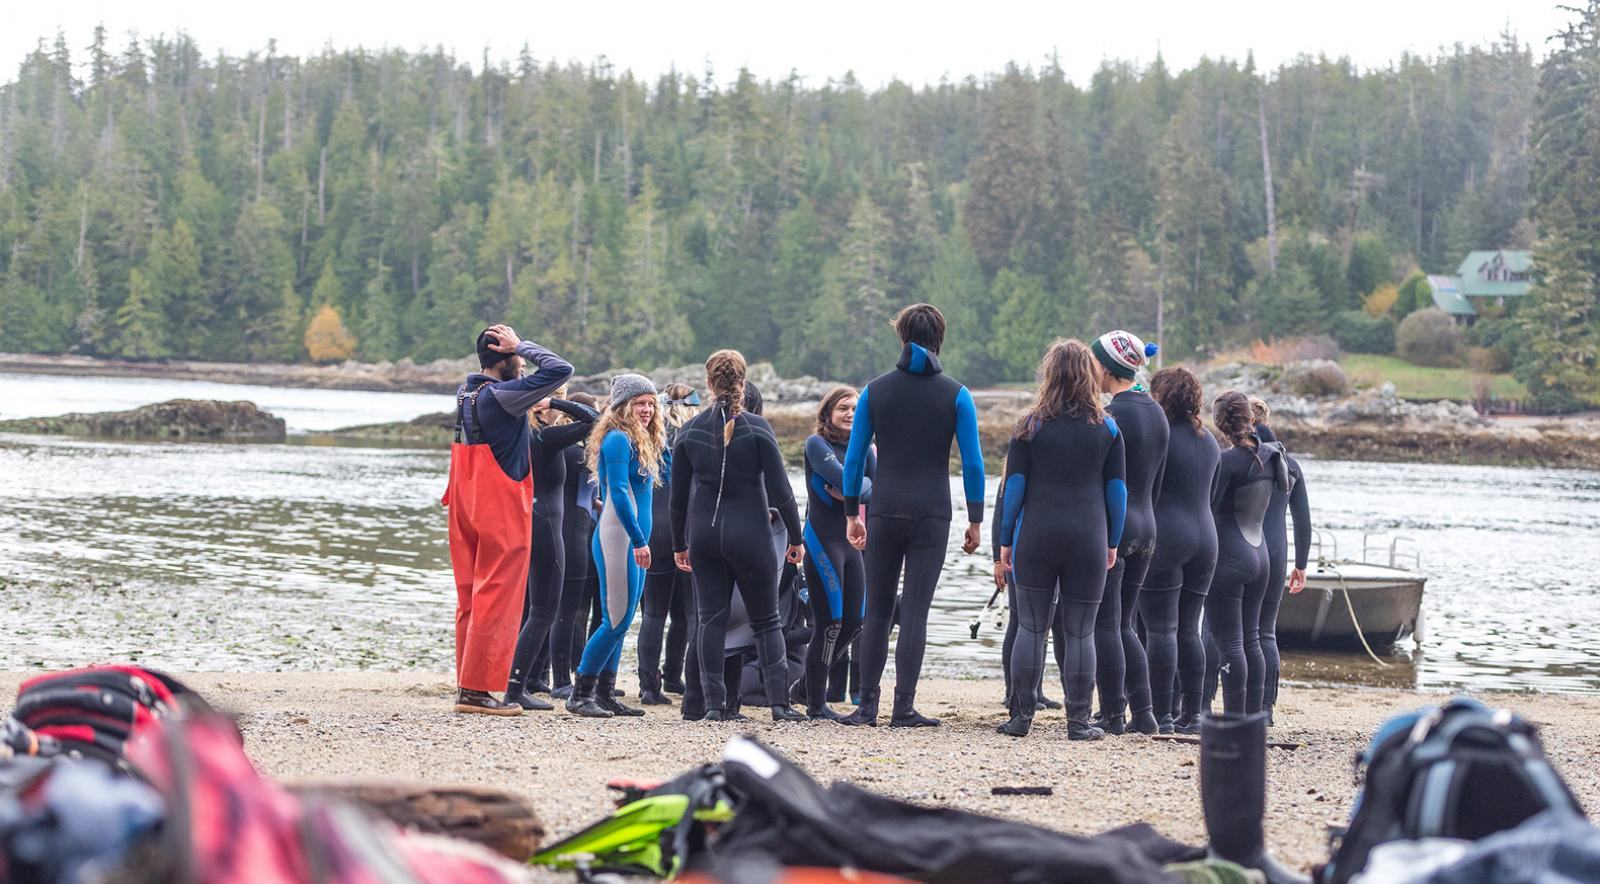 Group of students in wetsuits on shoreline by the ocean